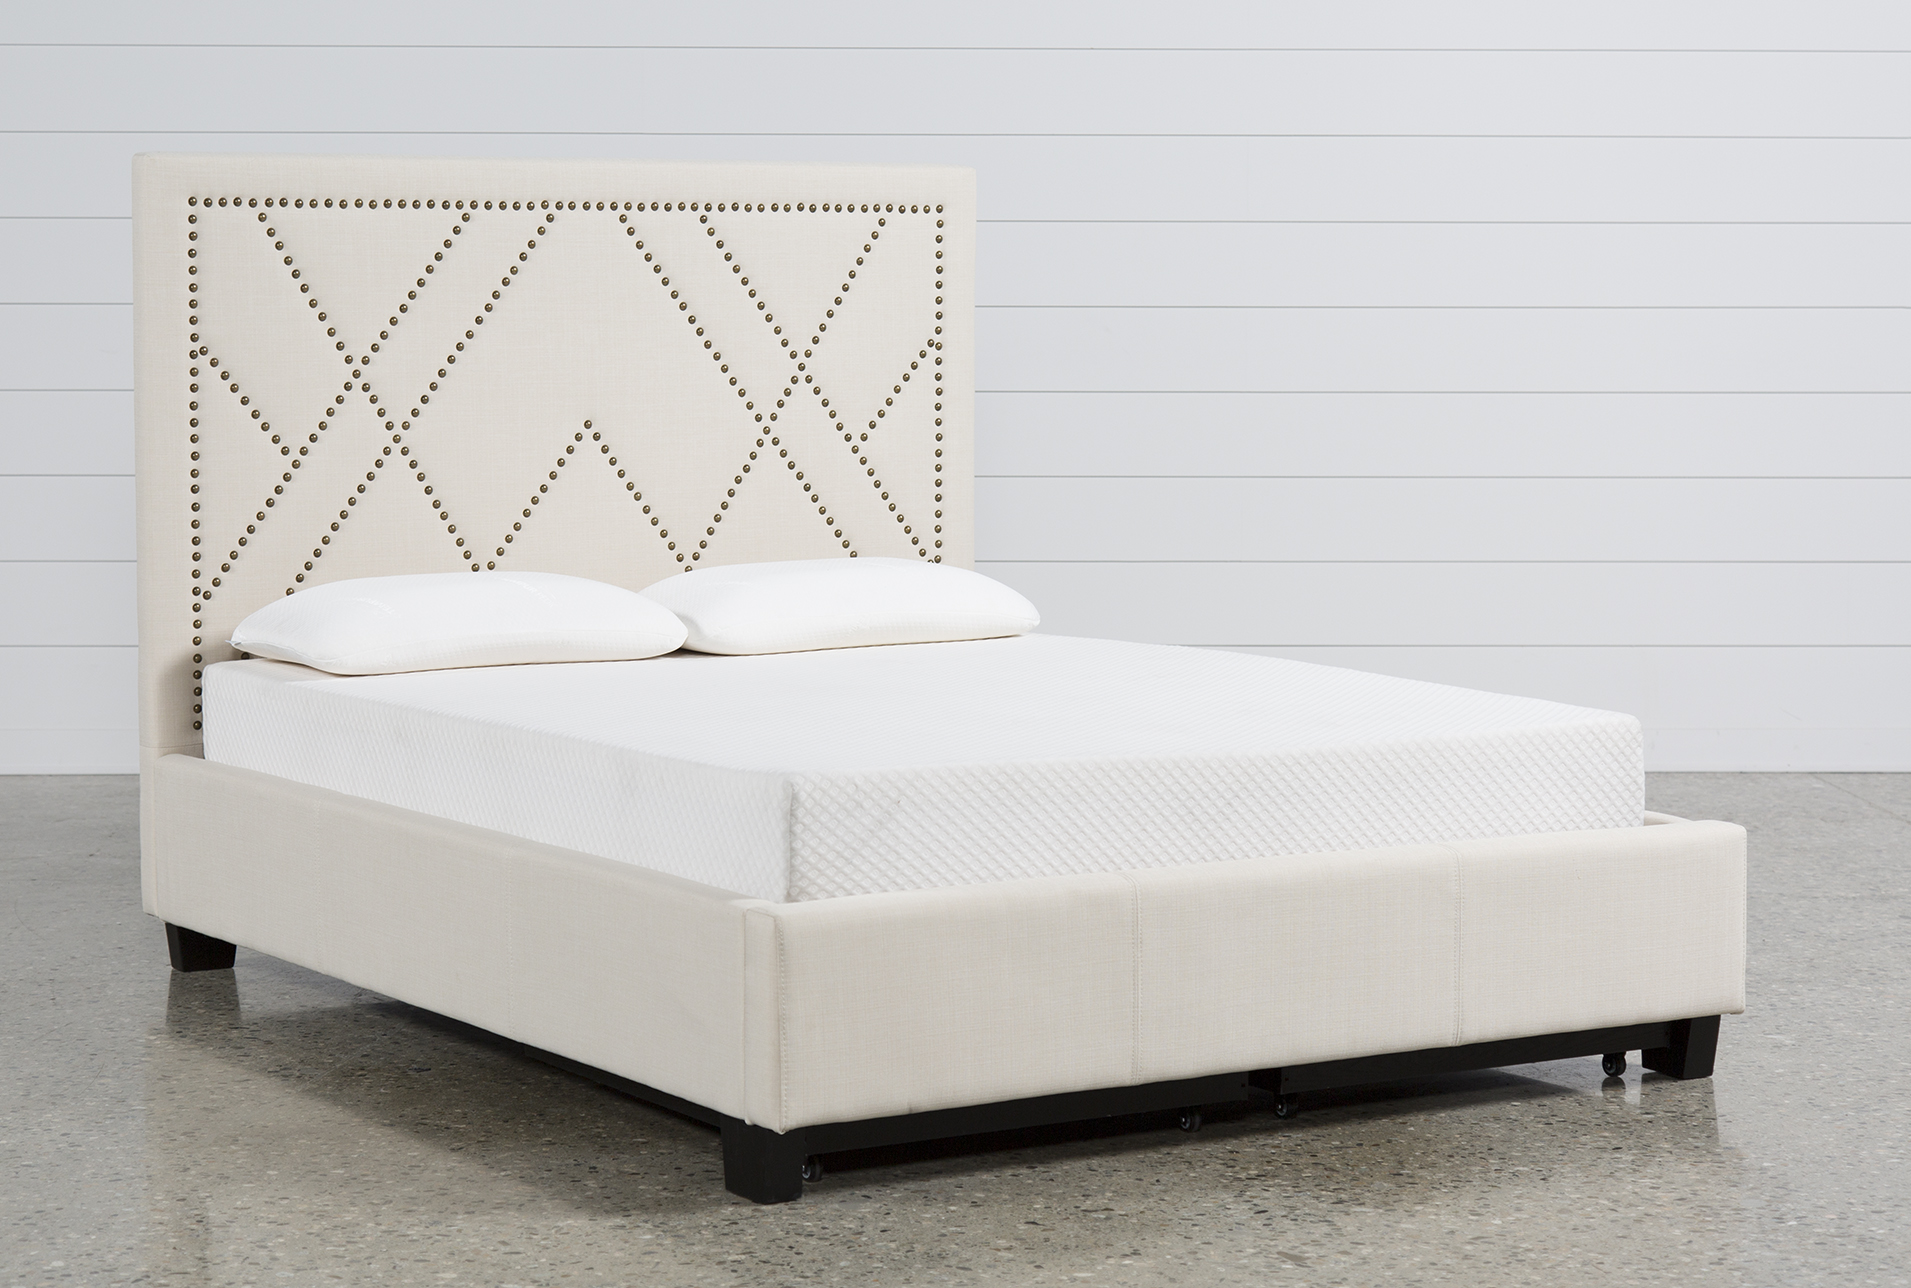 Alyson Queen Upholstered Platform Bed W/Storage - 360 & Alyson Queen Upholstered Platform Bed W/Storage | Living Spaces